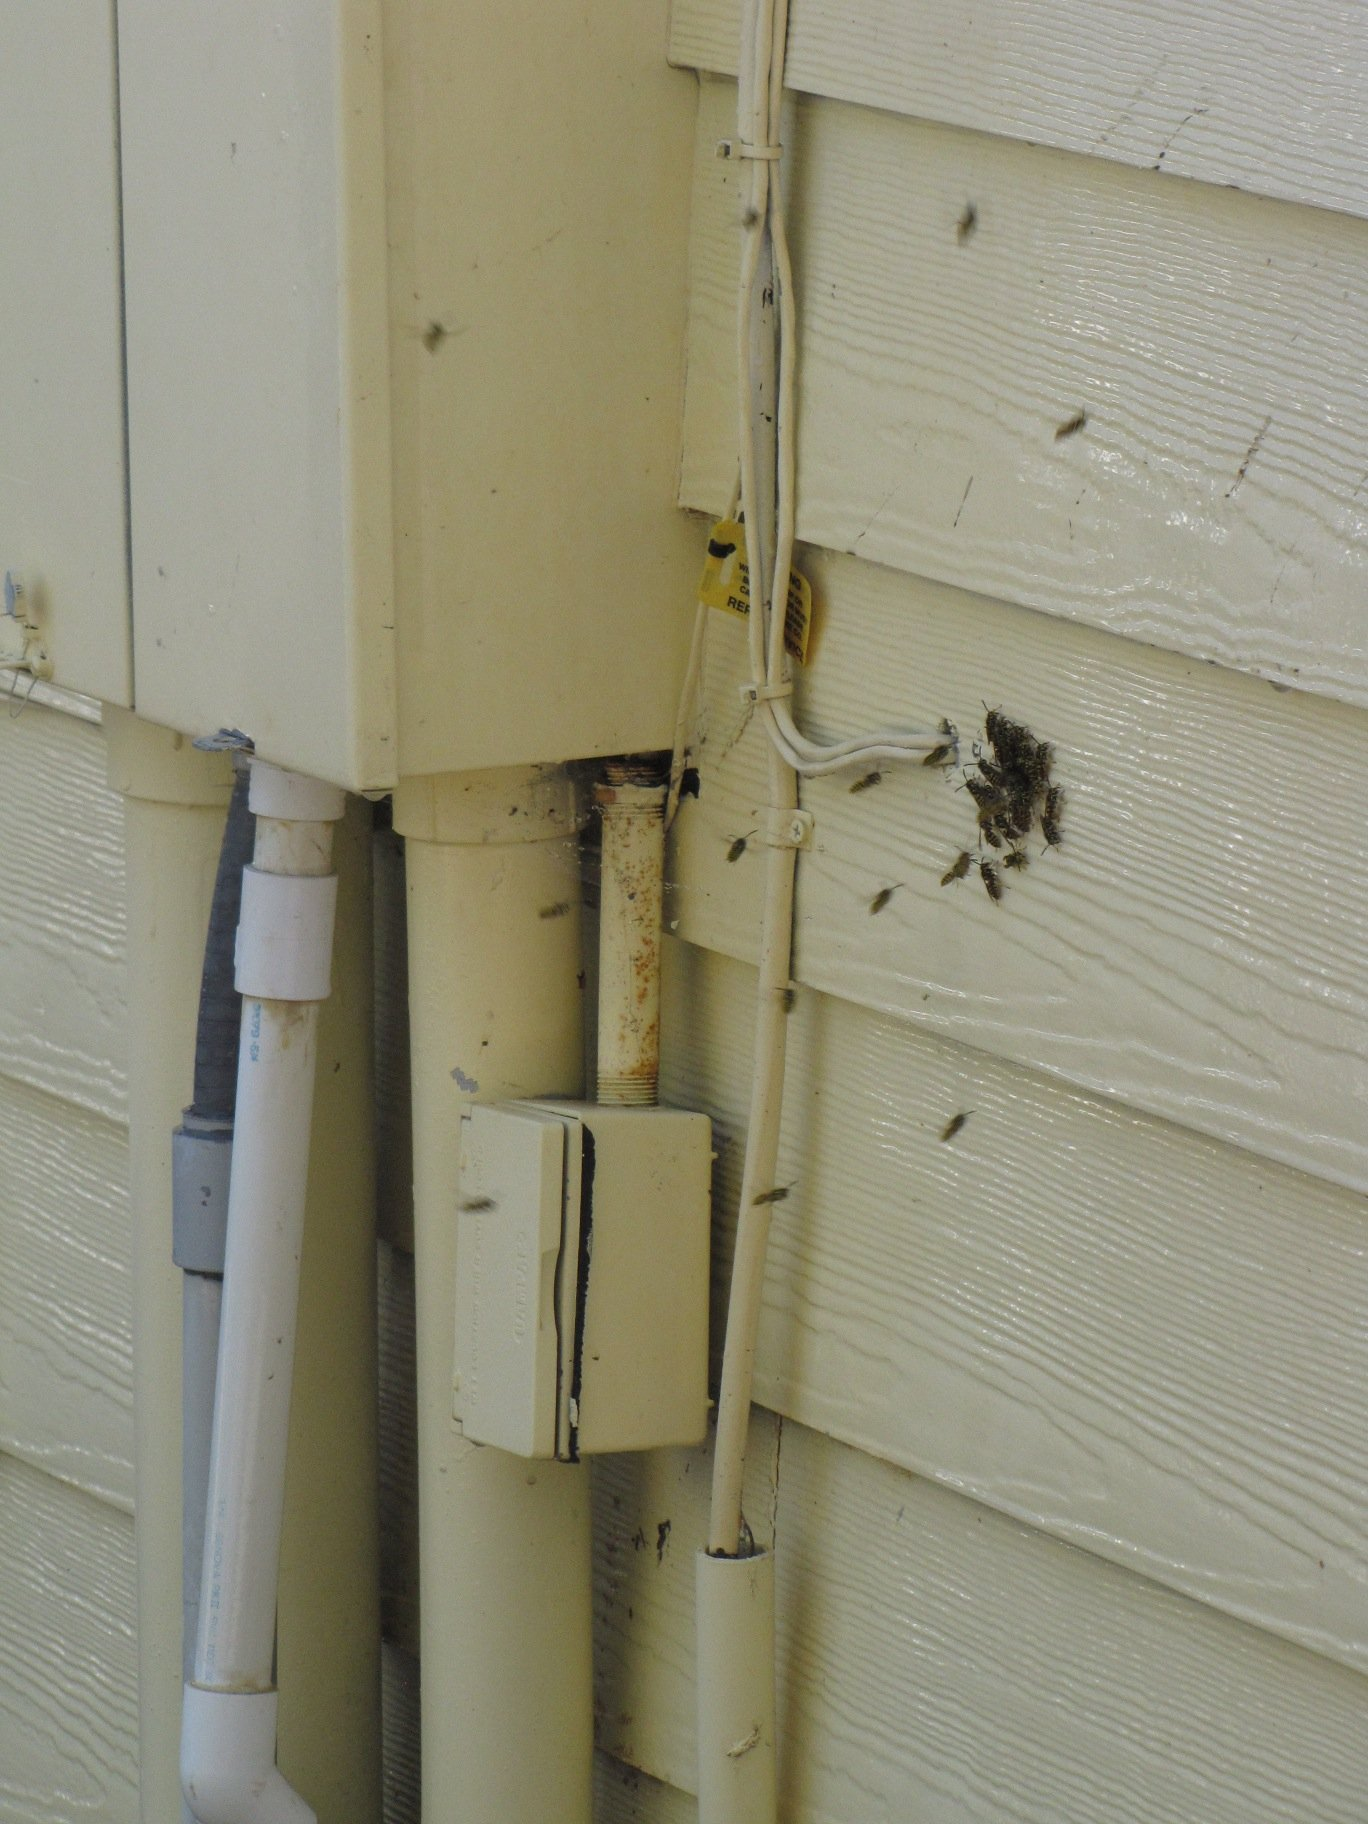 Bees in wall at cable hole